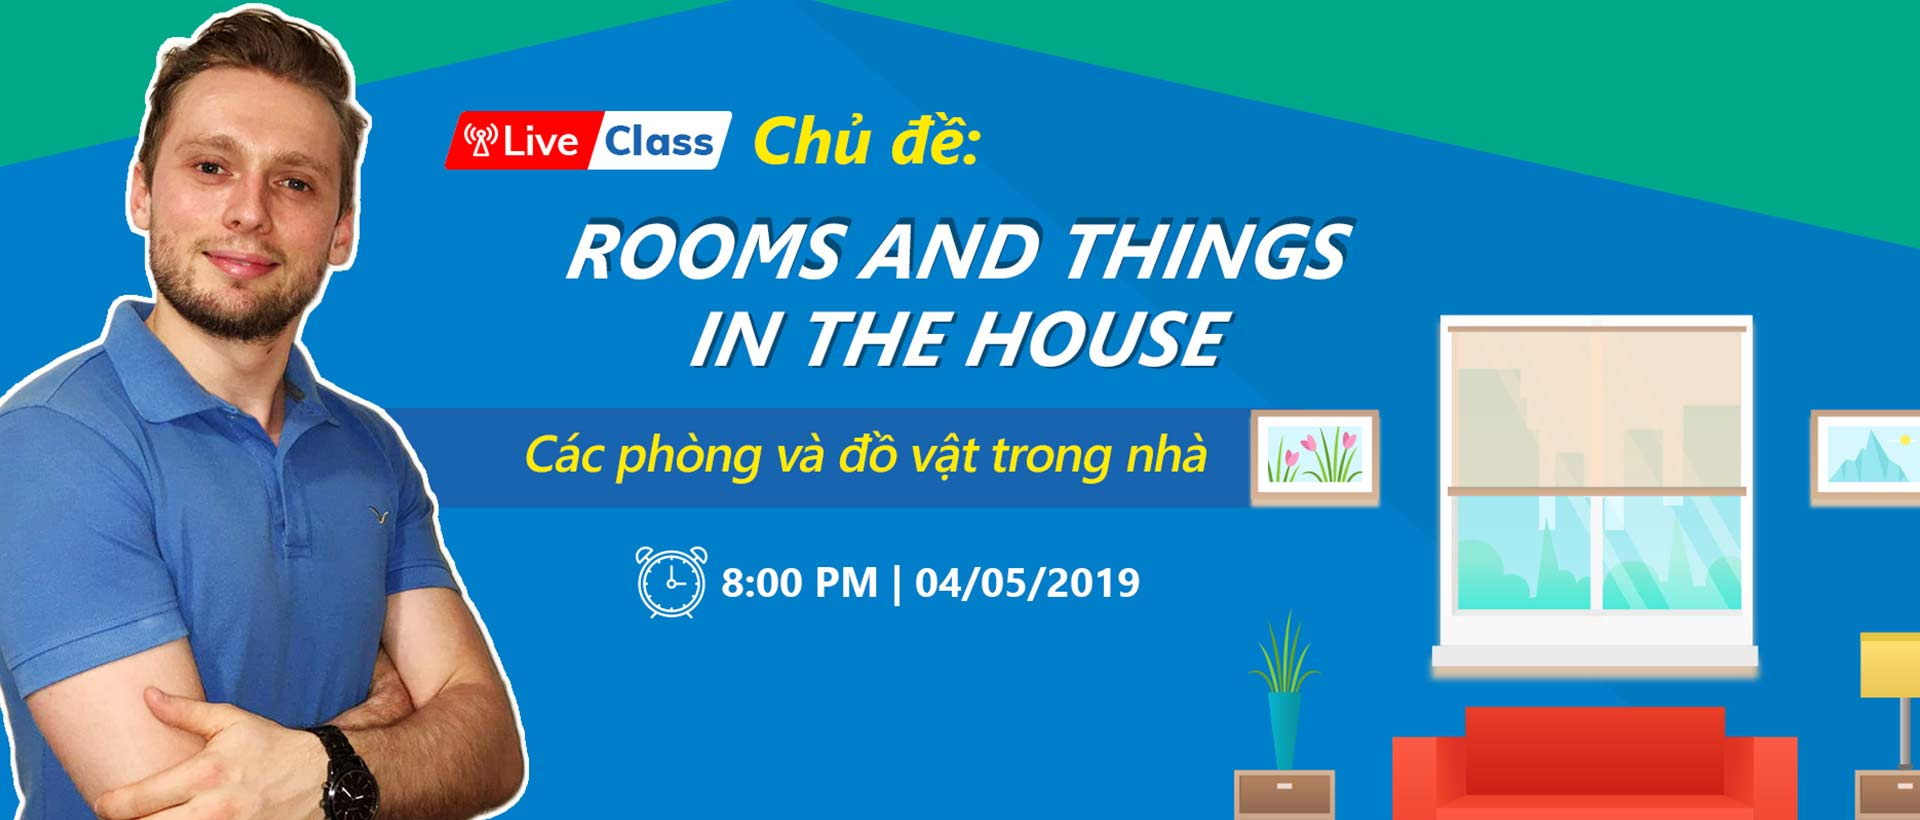 Live class tuần 2 - CHỦ ĐỀ: Rooms and things in the house